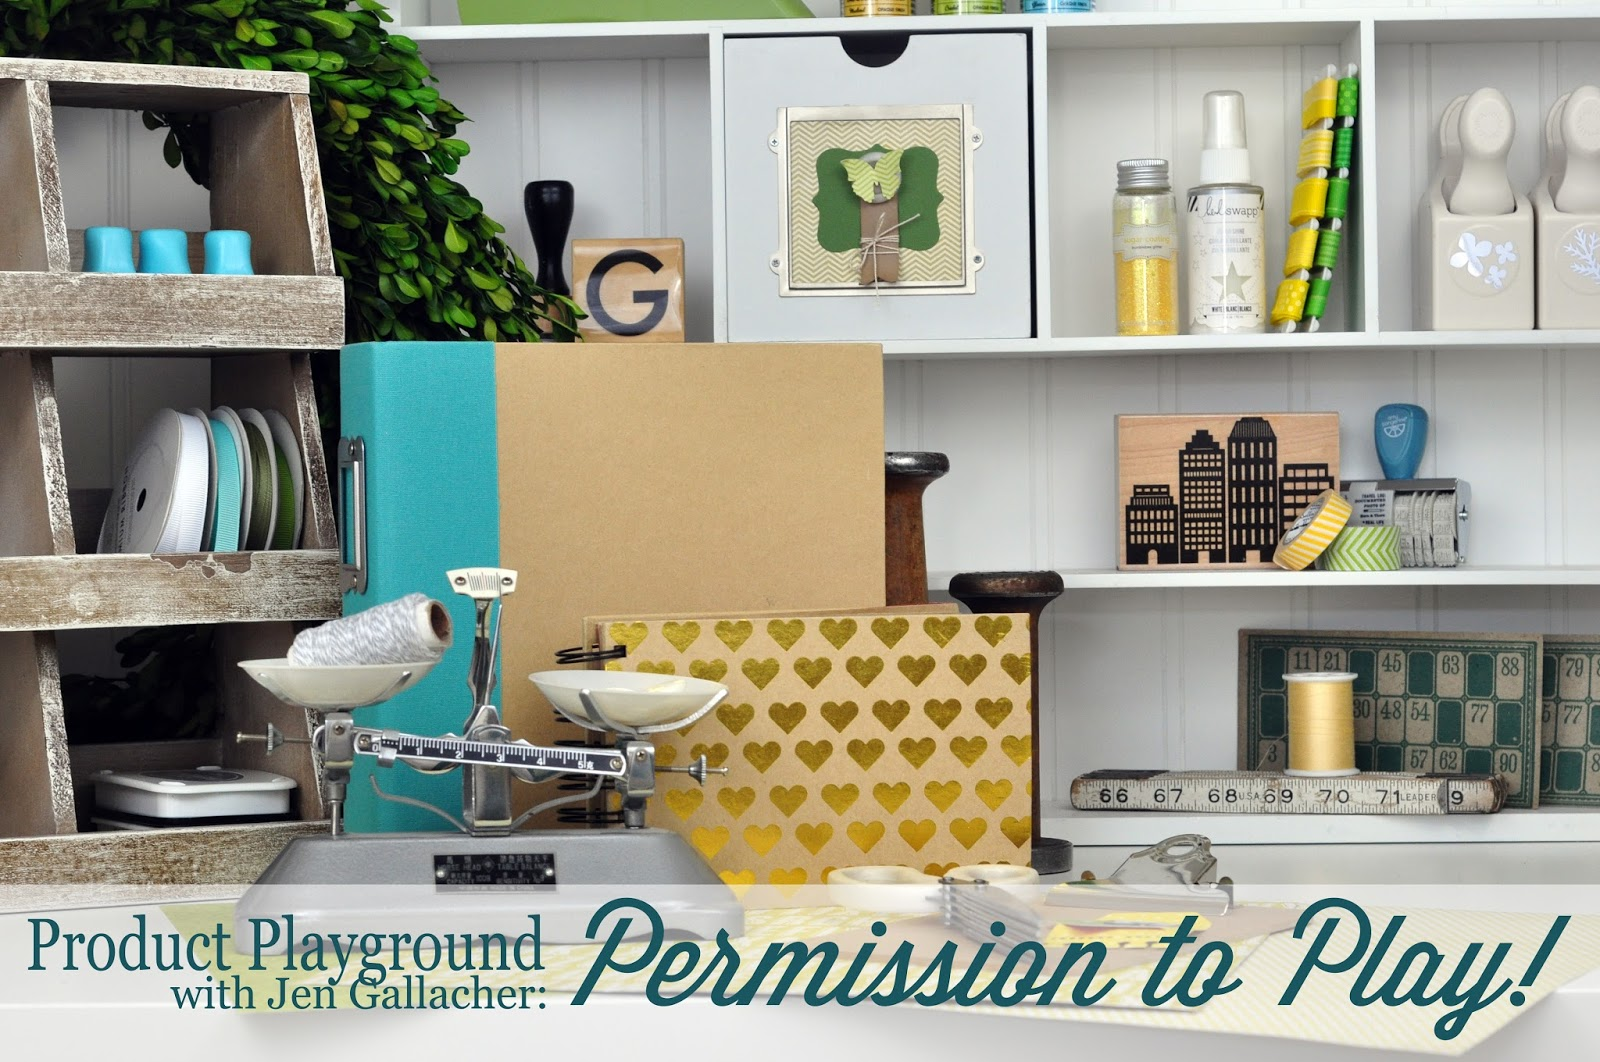 Product Playground Class with Jen Gallacher http://www.bigpictureclasses.com/users/JenGallacher